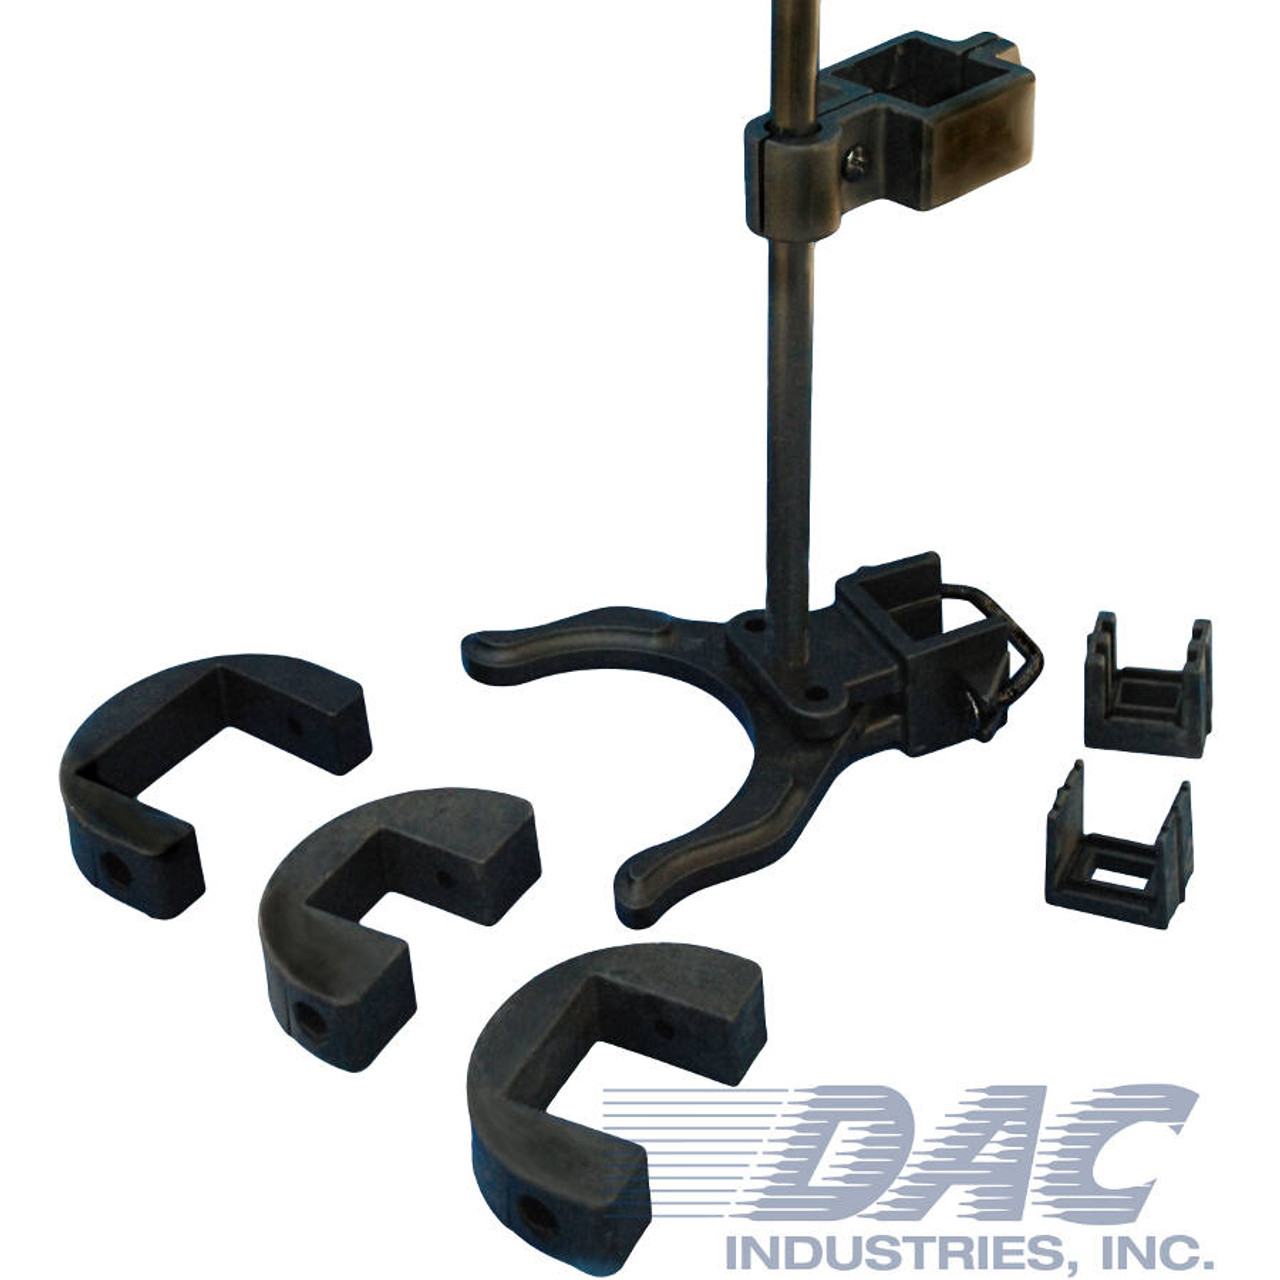 Square Auto-Latch Adapter Kit from DAC Industries - Auto-Latch Not Included.